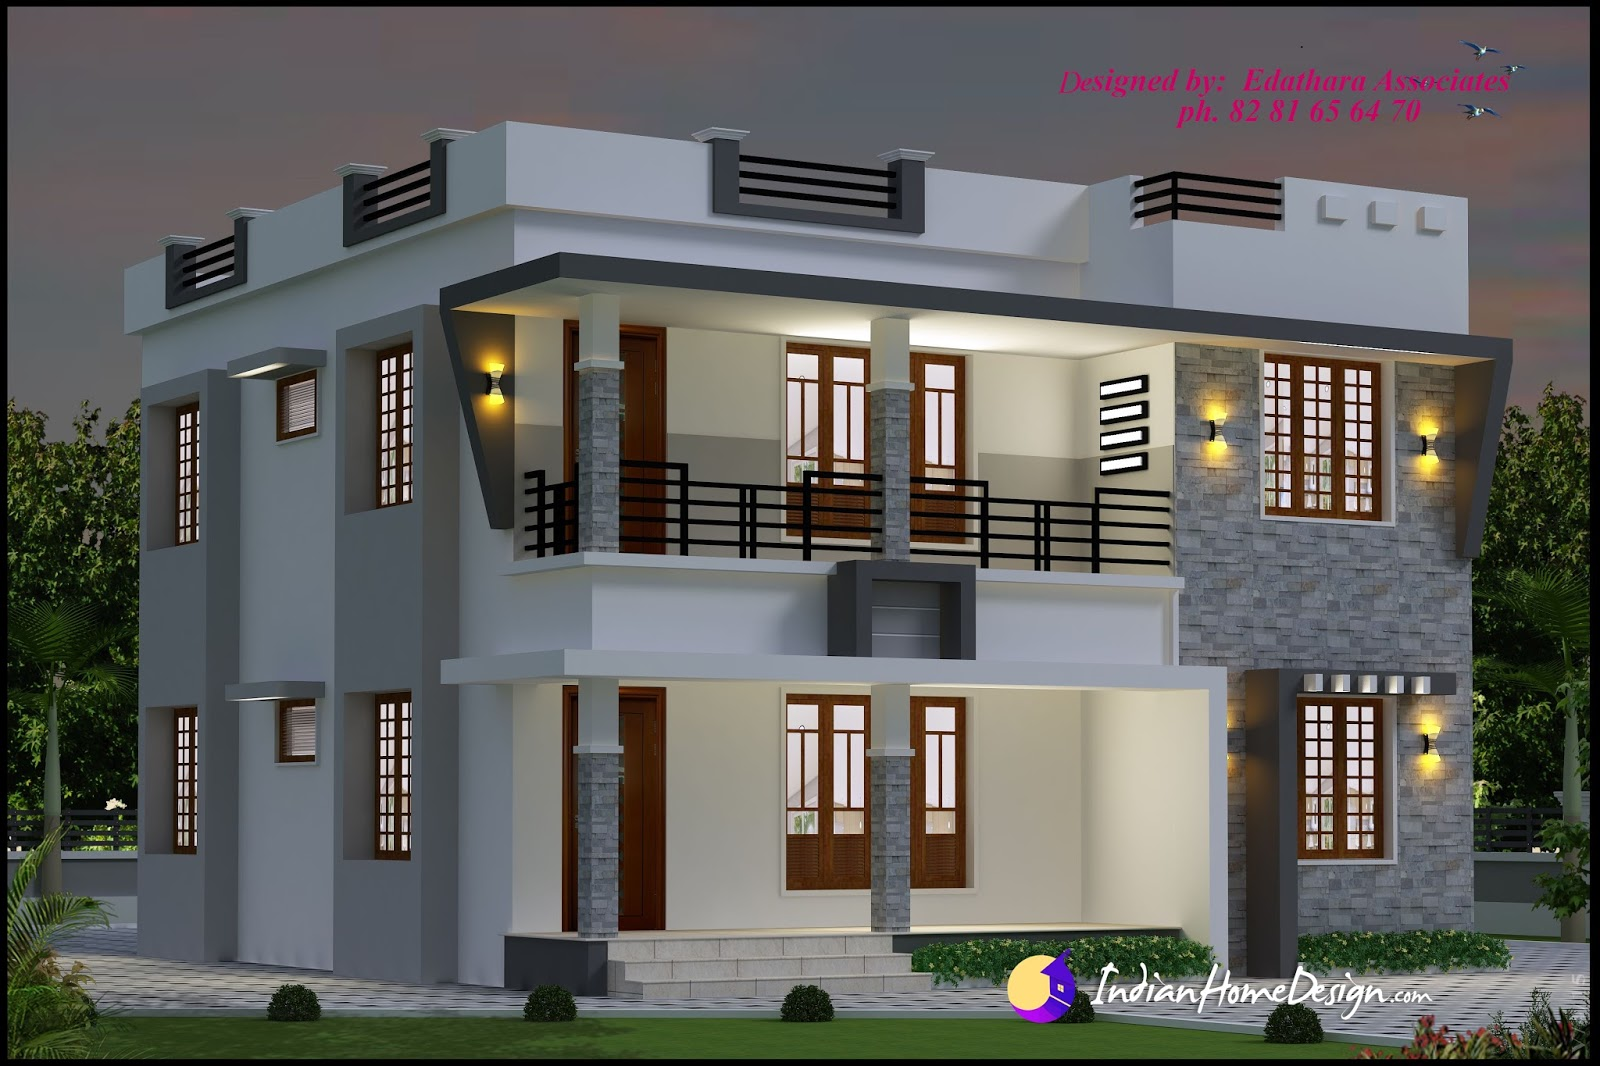 1696 sqft modern double floor kerala home design indian for Home design double floor